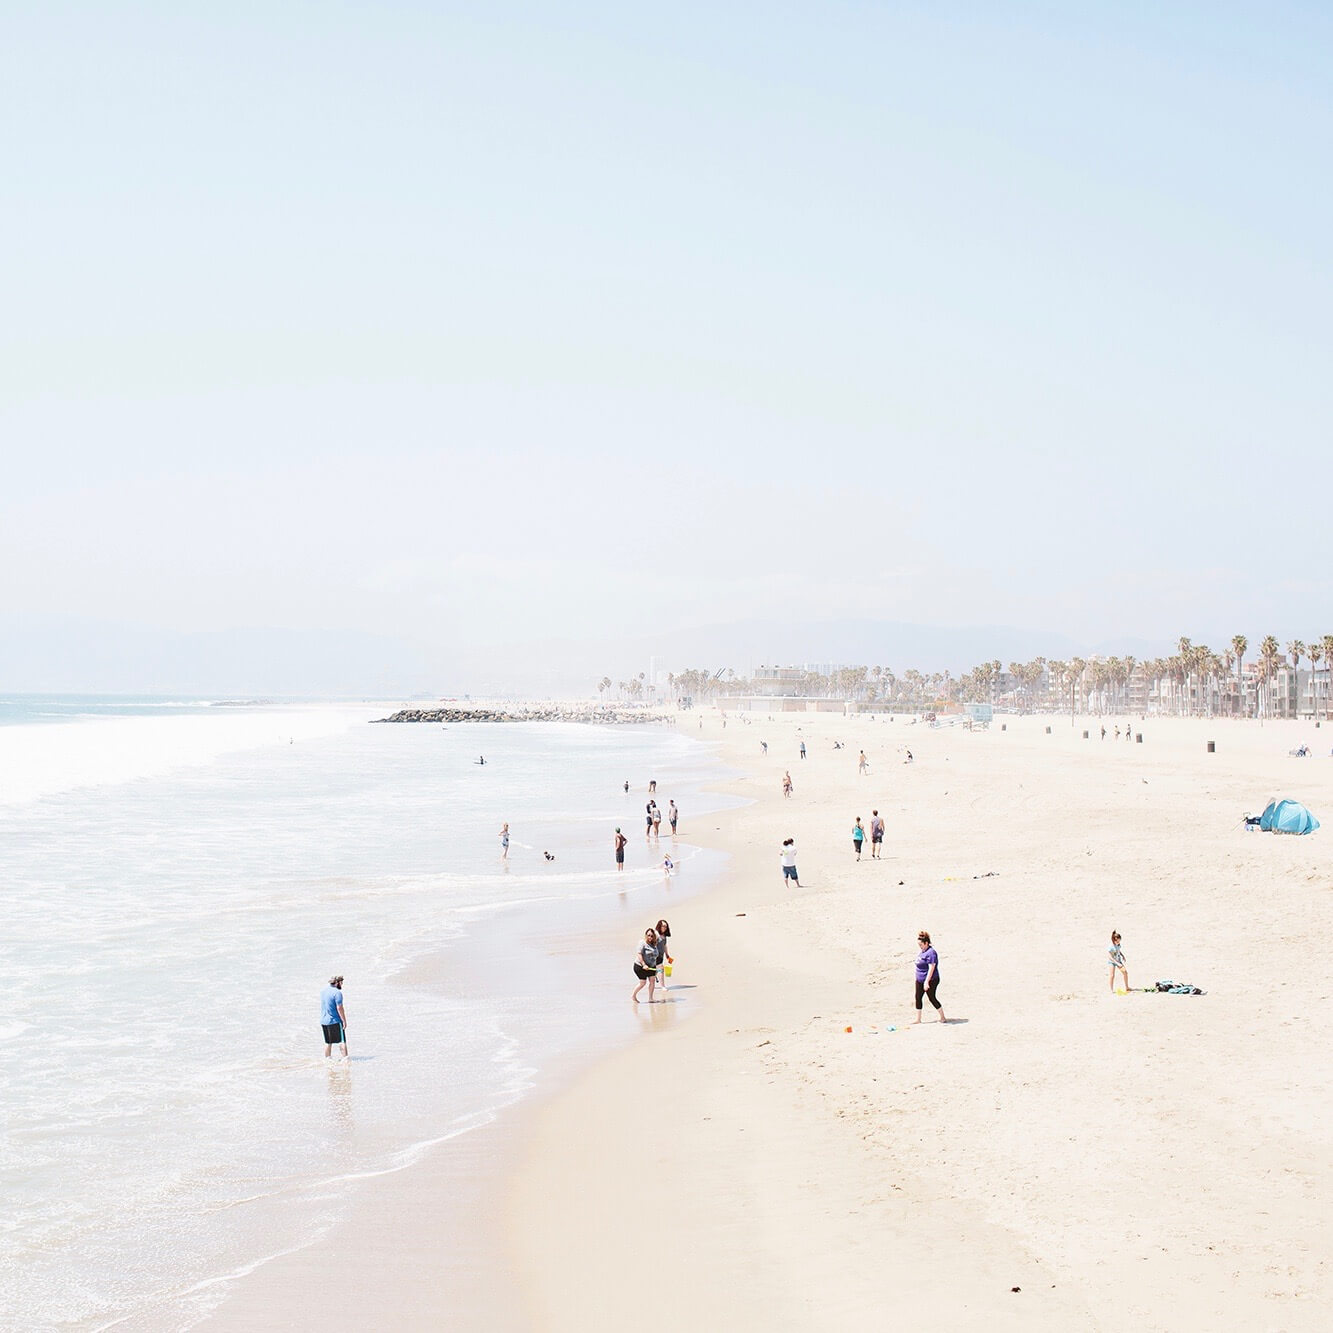 Venice beach during the day